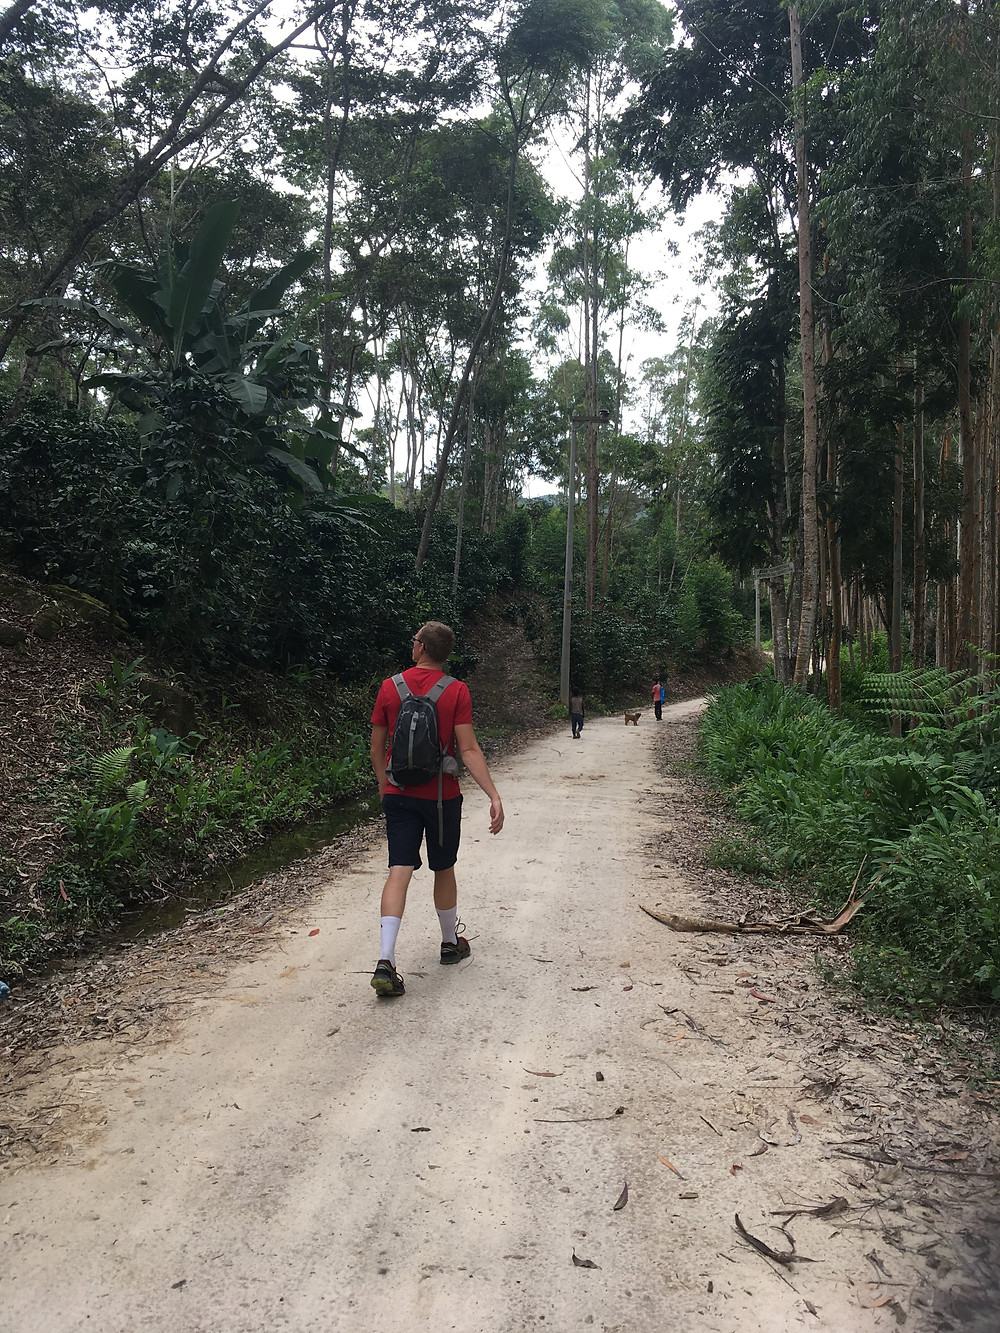 Person in red walking along jungle dirt road.